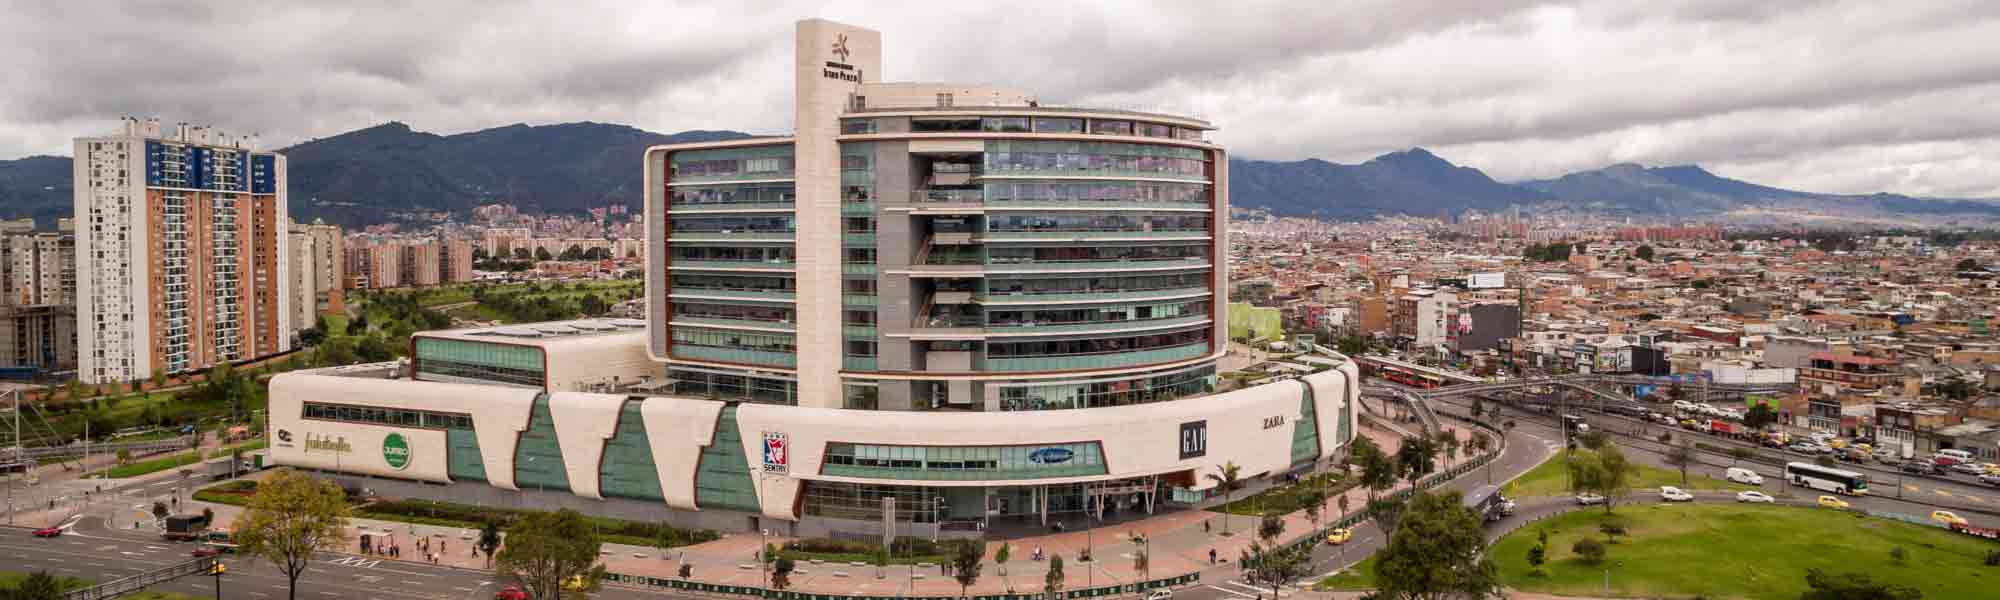 Titán Plaza is a Business Center project located in Bogota